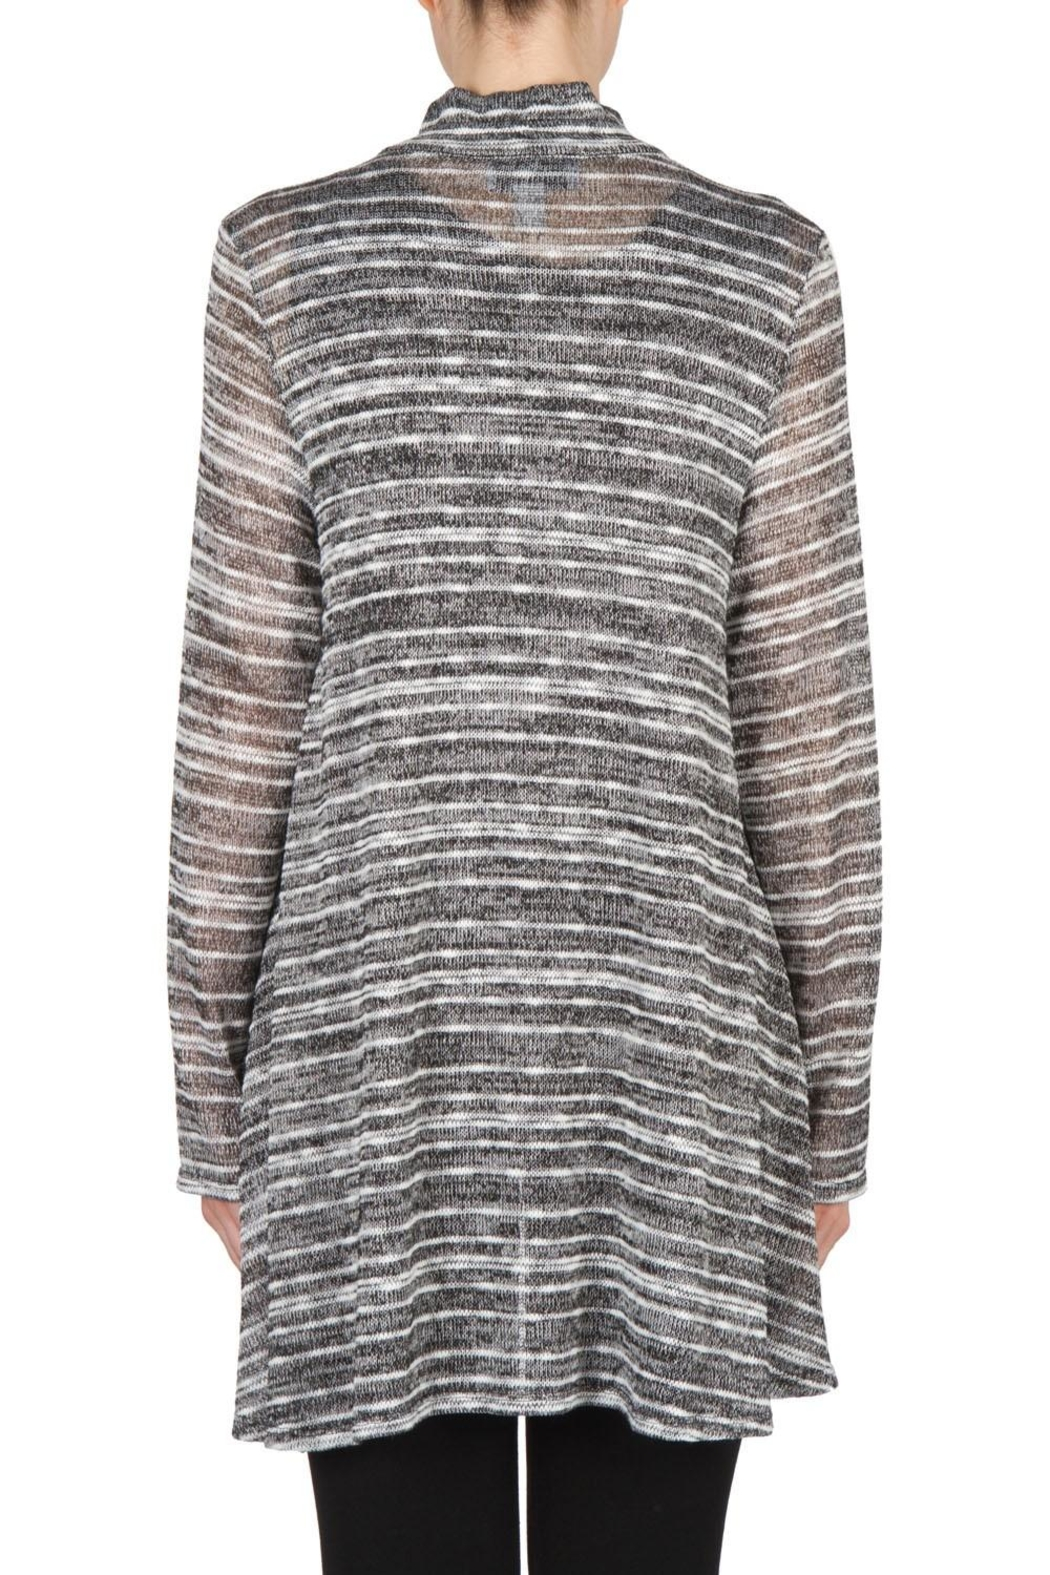 Joseph Ribkoff Zip Front Tunic Top - Side Cropped Image